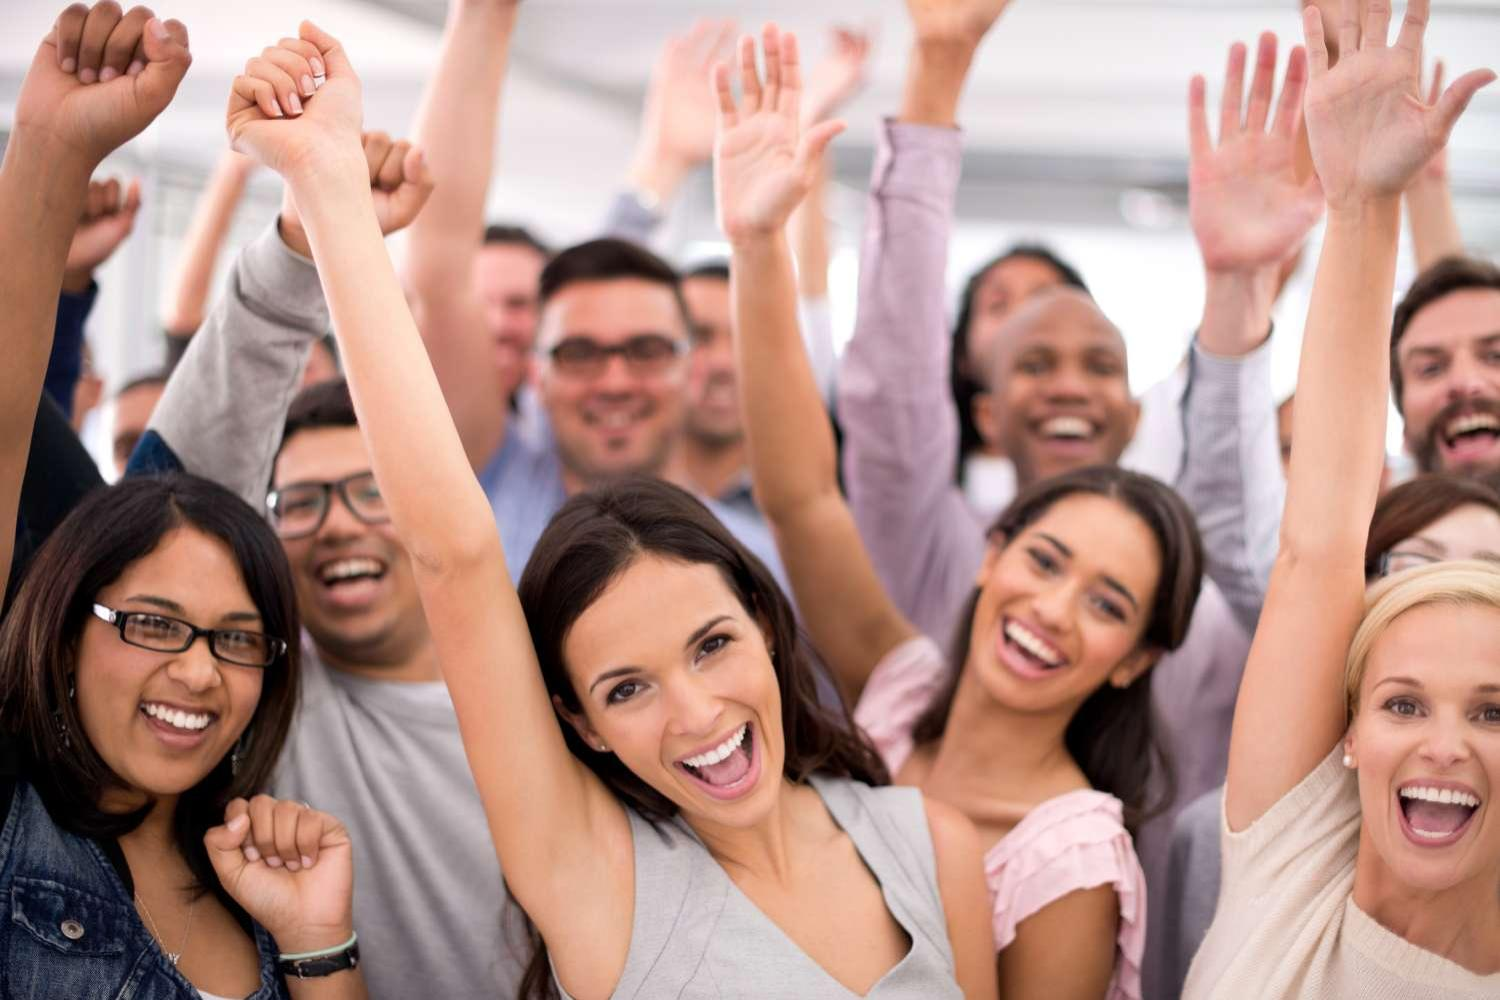 Shot of a group of smiling businesspeople raising their hands together